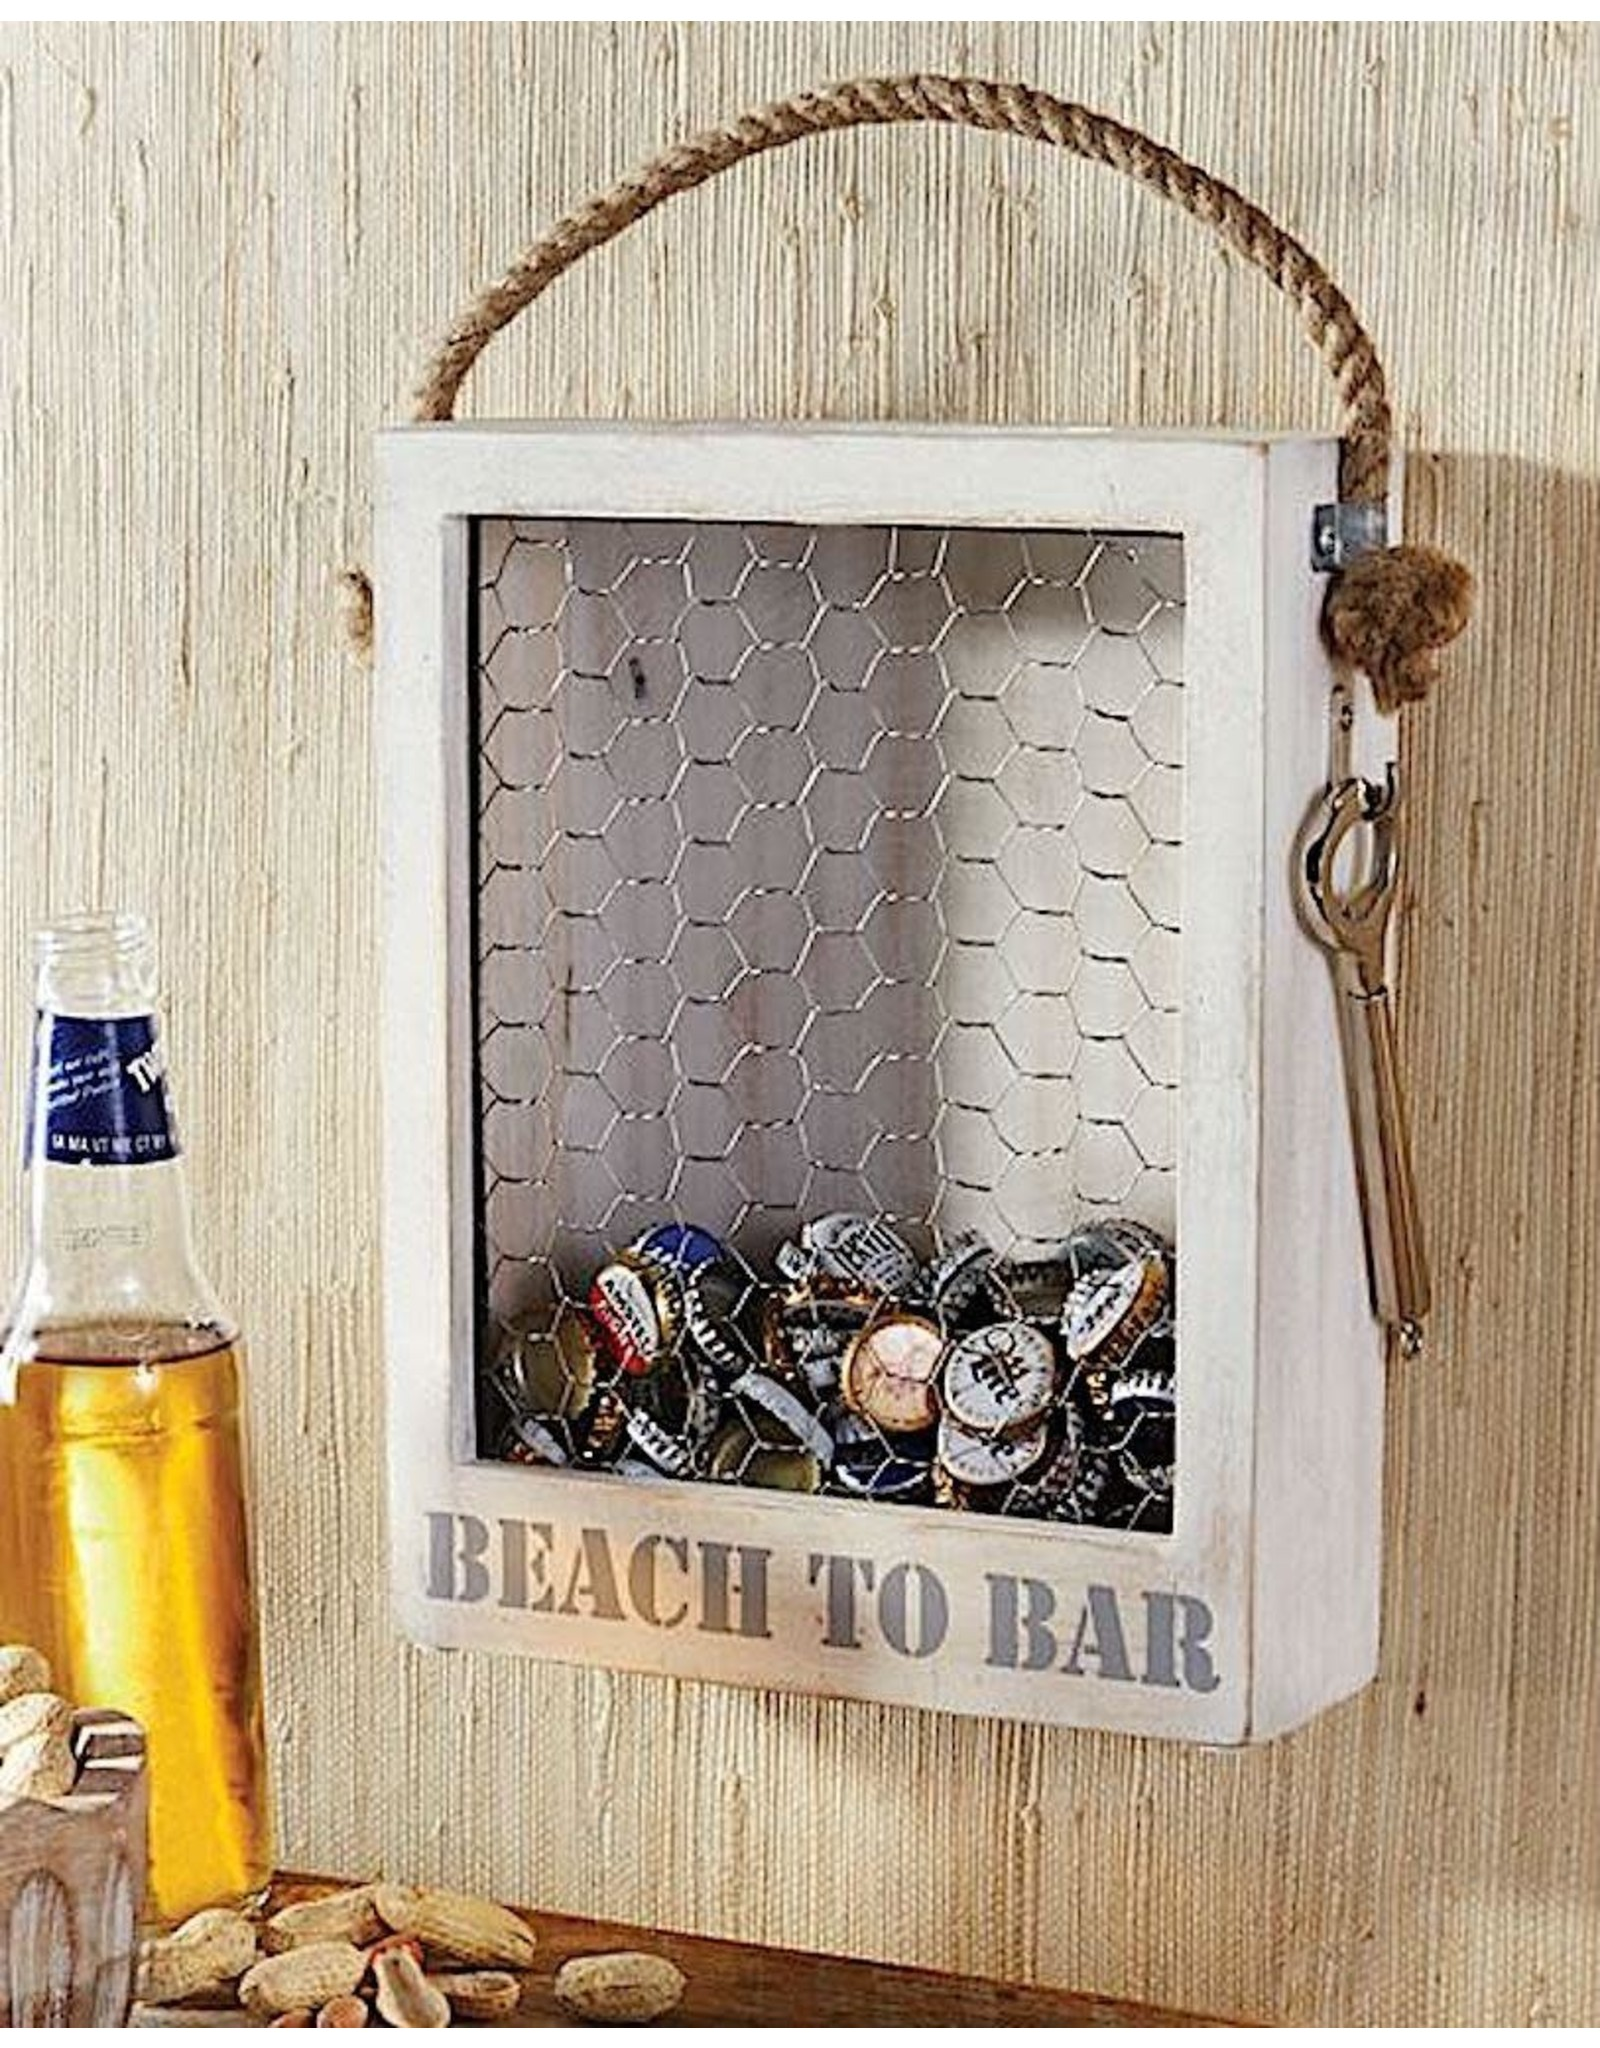 Mud Pie Beach To Bar Bottle Top Display Box W Bottle Opener On Chain